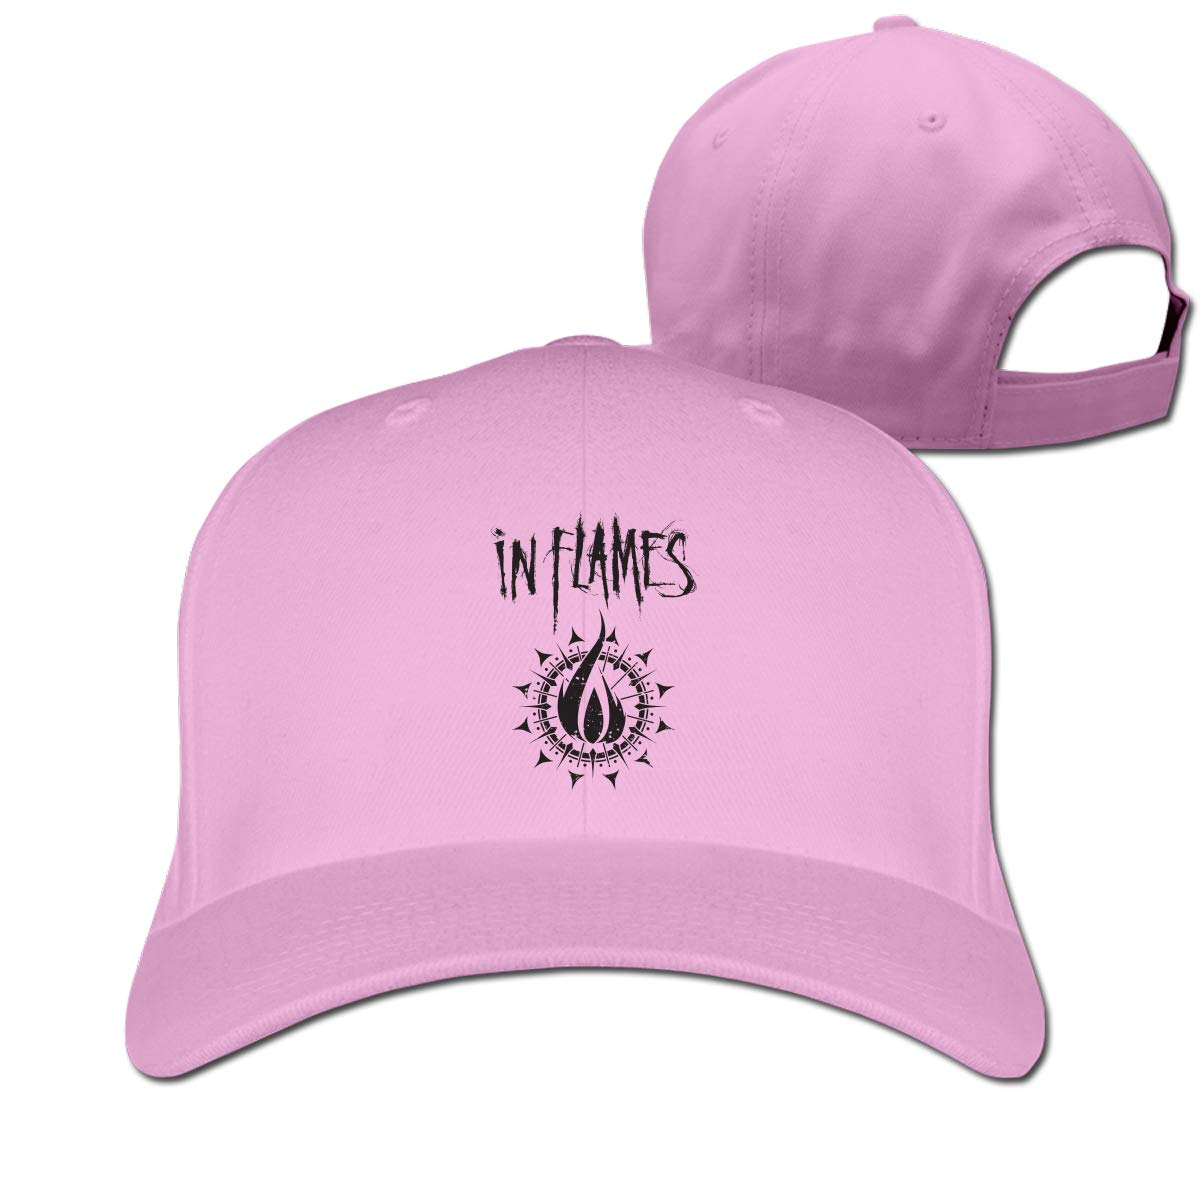 in Flames Classic Adjustable Cotton Baseball Caps Trucker Driver Hat Outdoor Cap Fitted Hats Dad Hat Pink